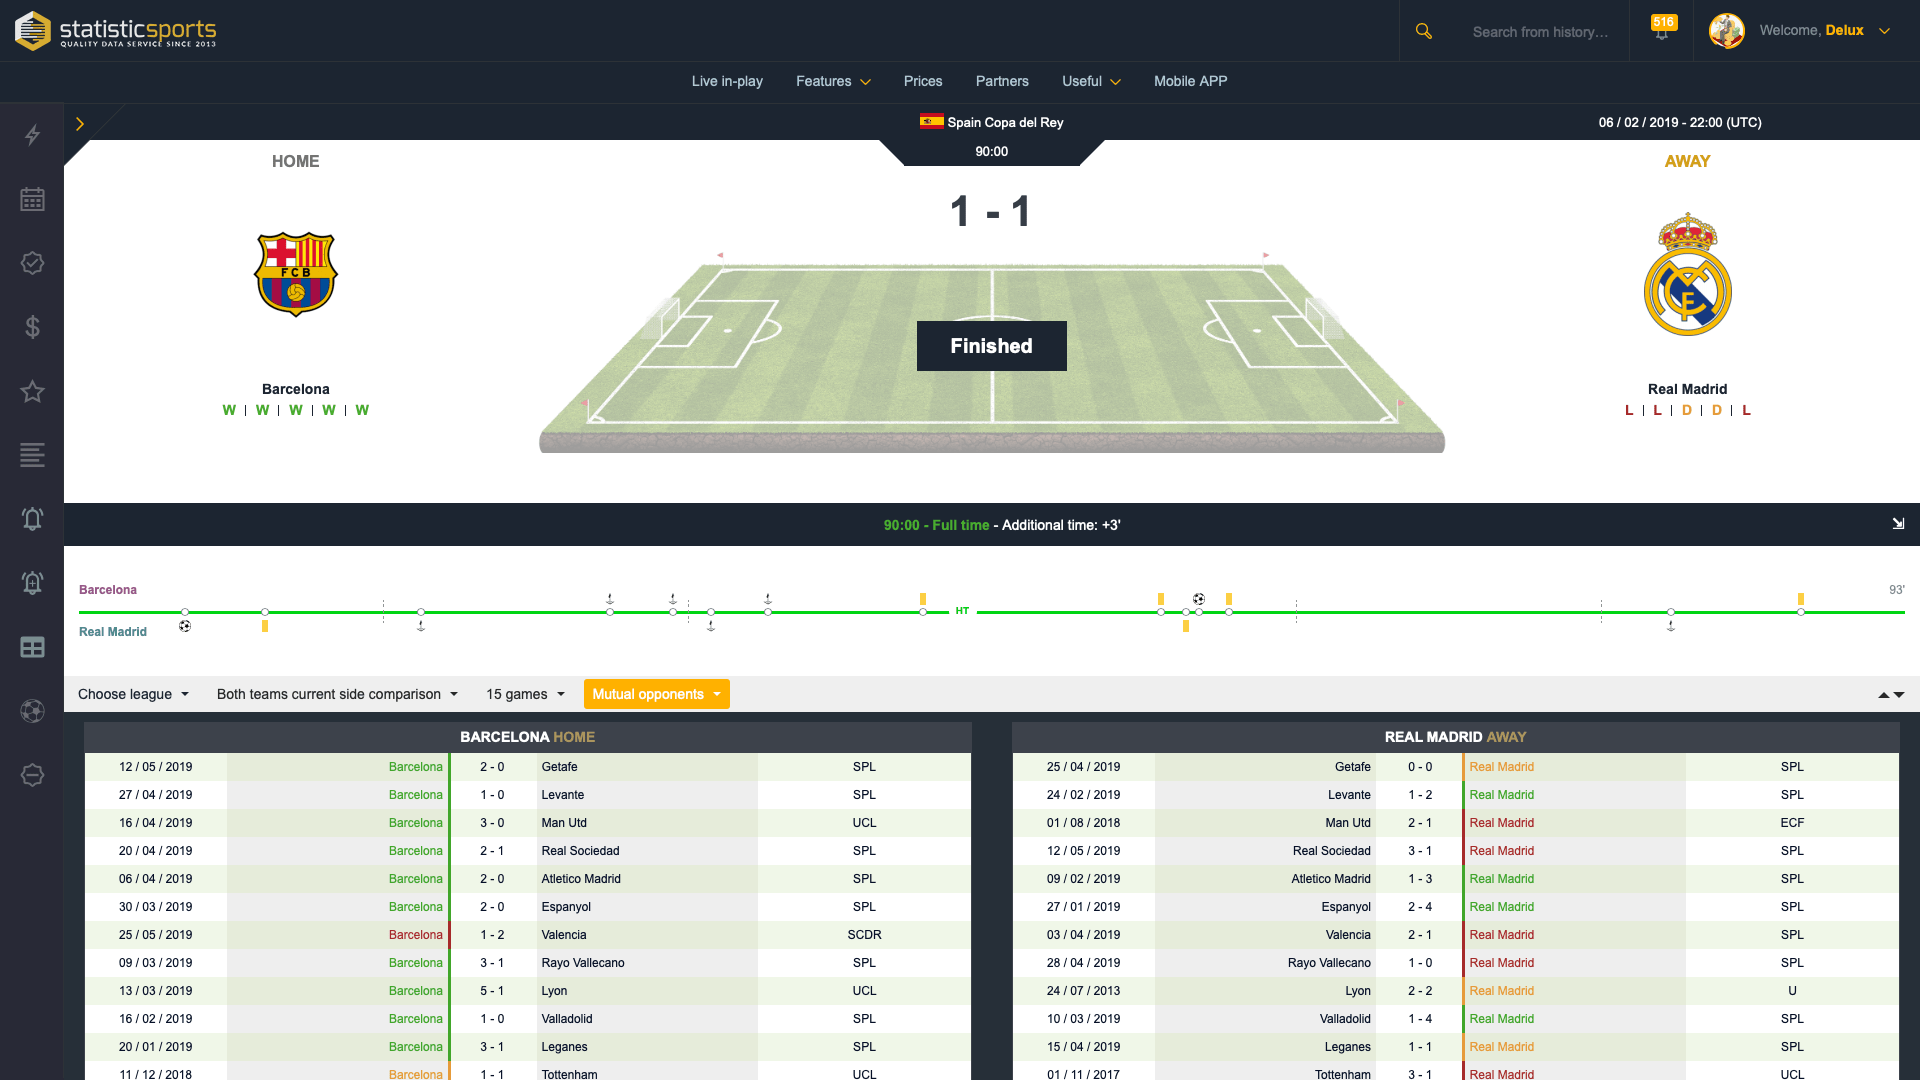 Live football scores and statistics - StatisticSports